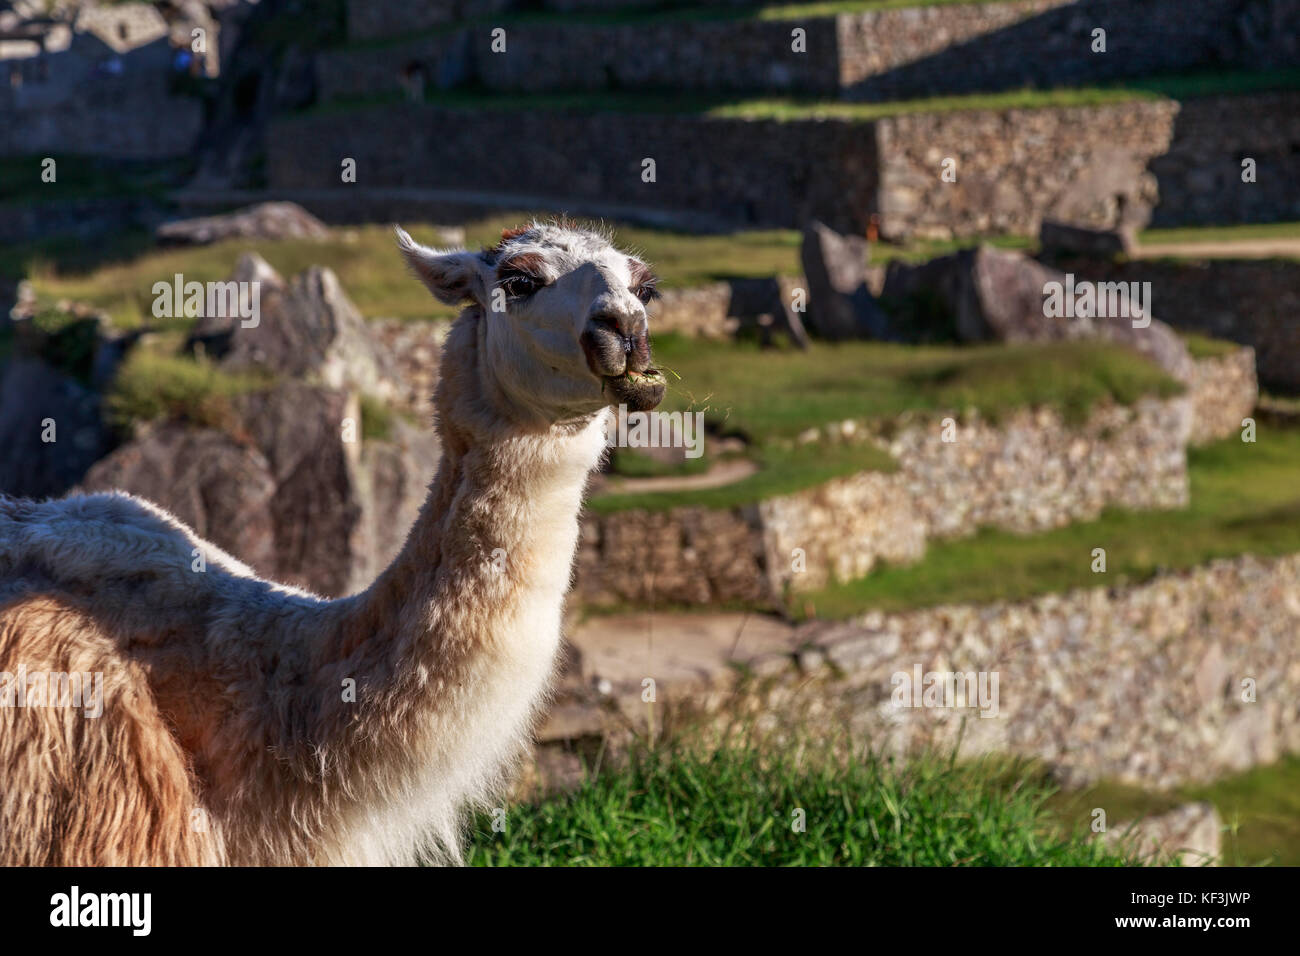 Llama chewing the grass with the terrace of Machu Picchu as a background, Cuzco region, Peru - Stock Image